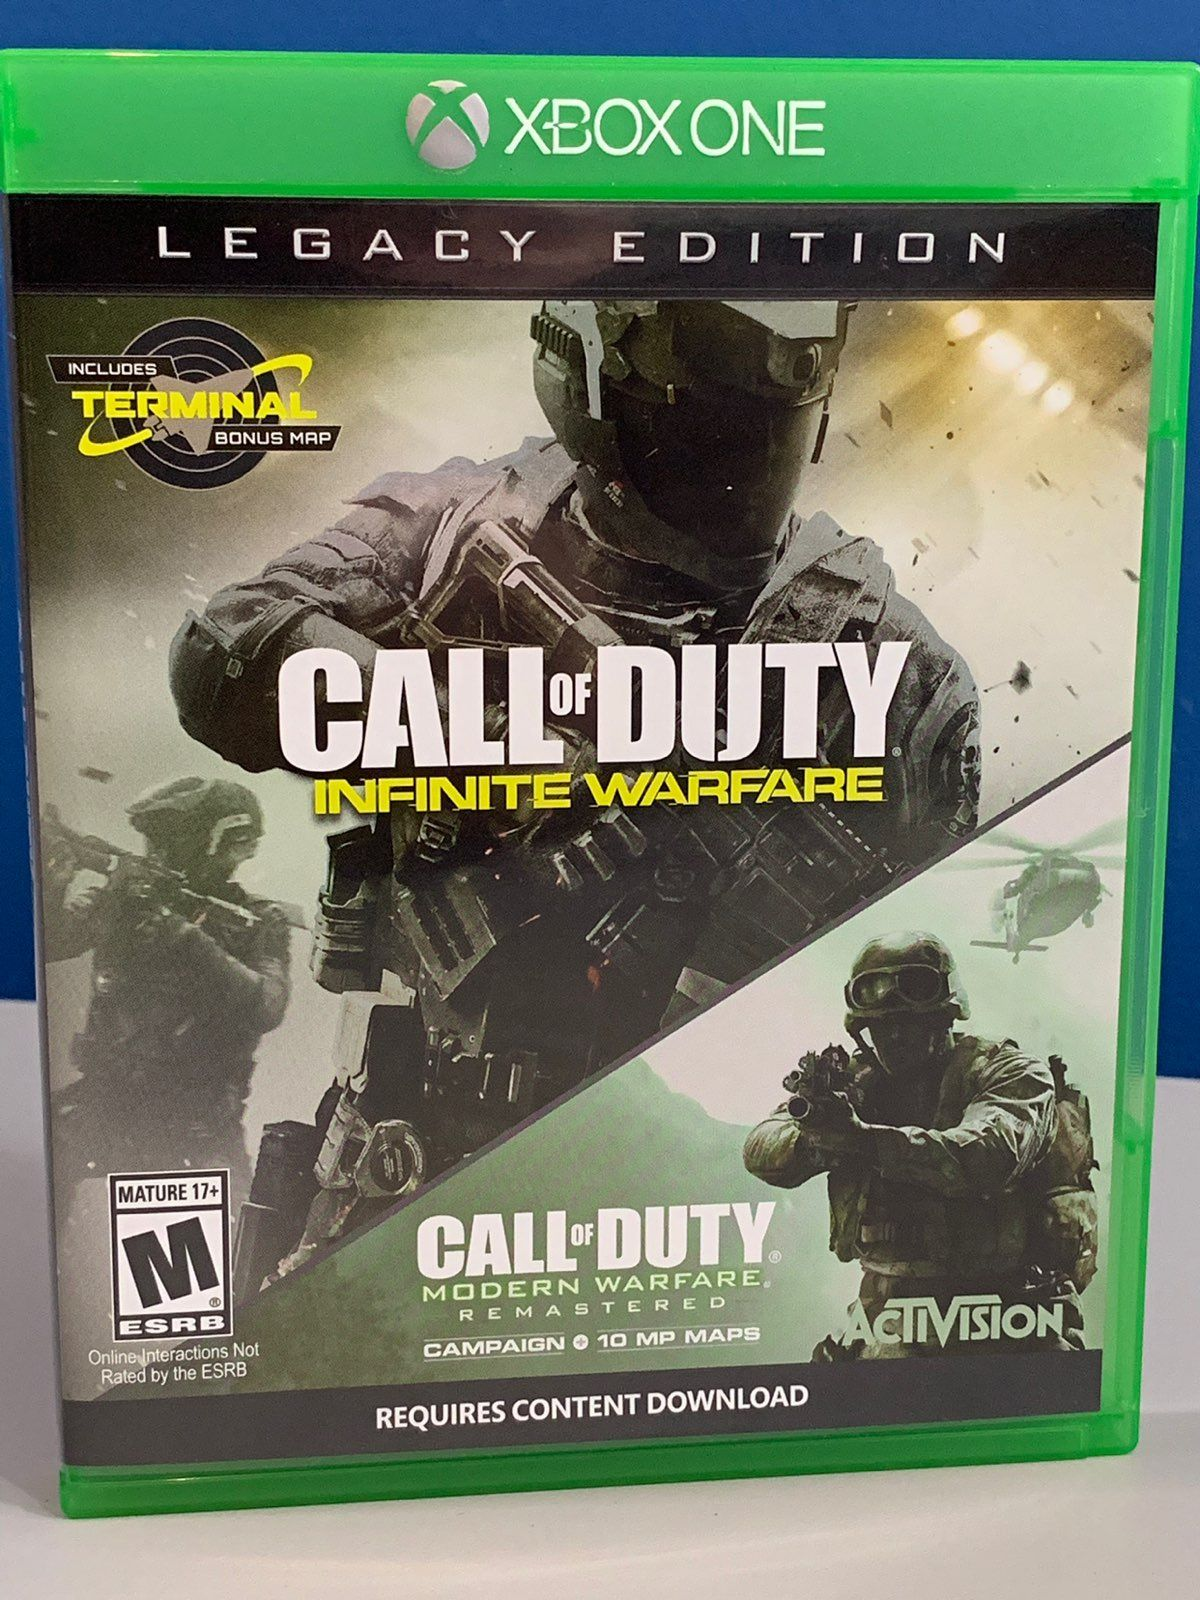 1dae998ff354b782ece7a09c6aa36717 - How To Get Call Of Duty Infinite Warfare For Free